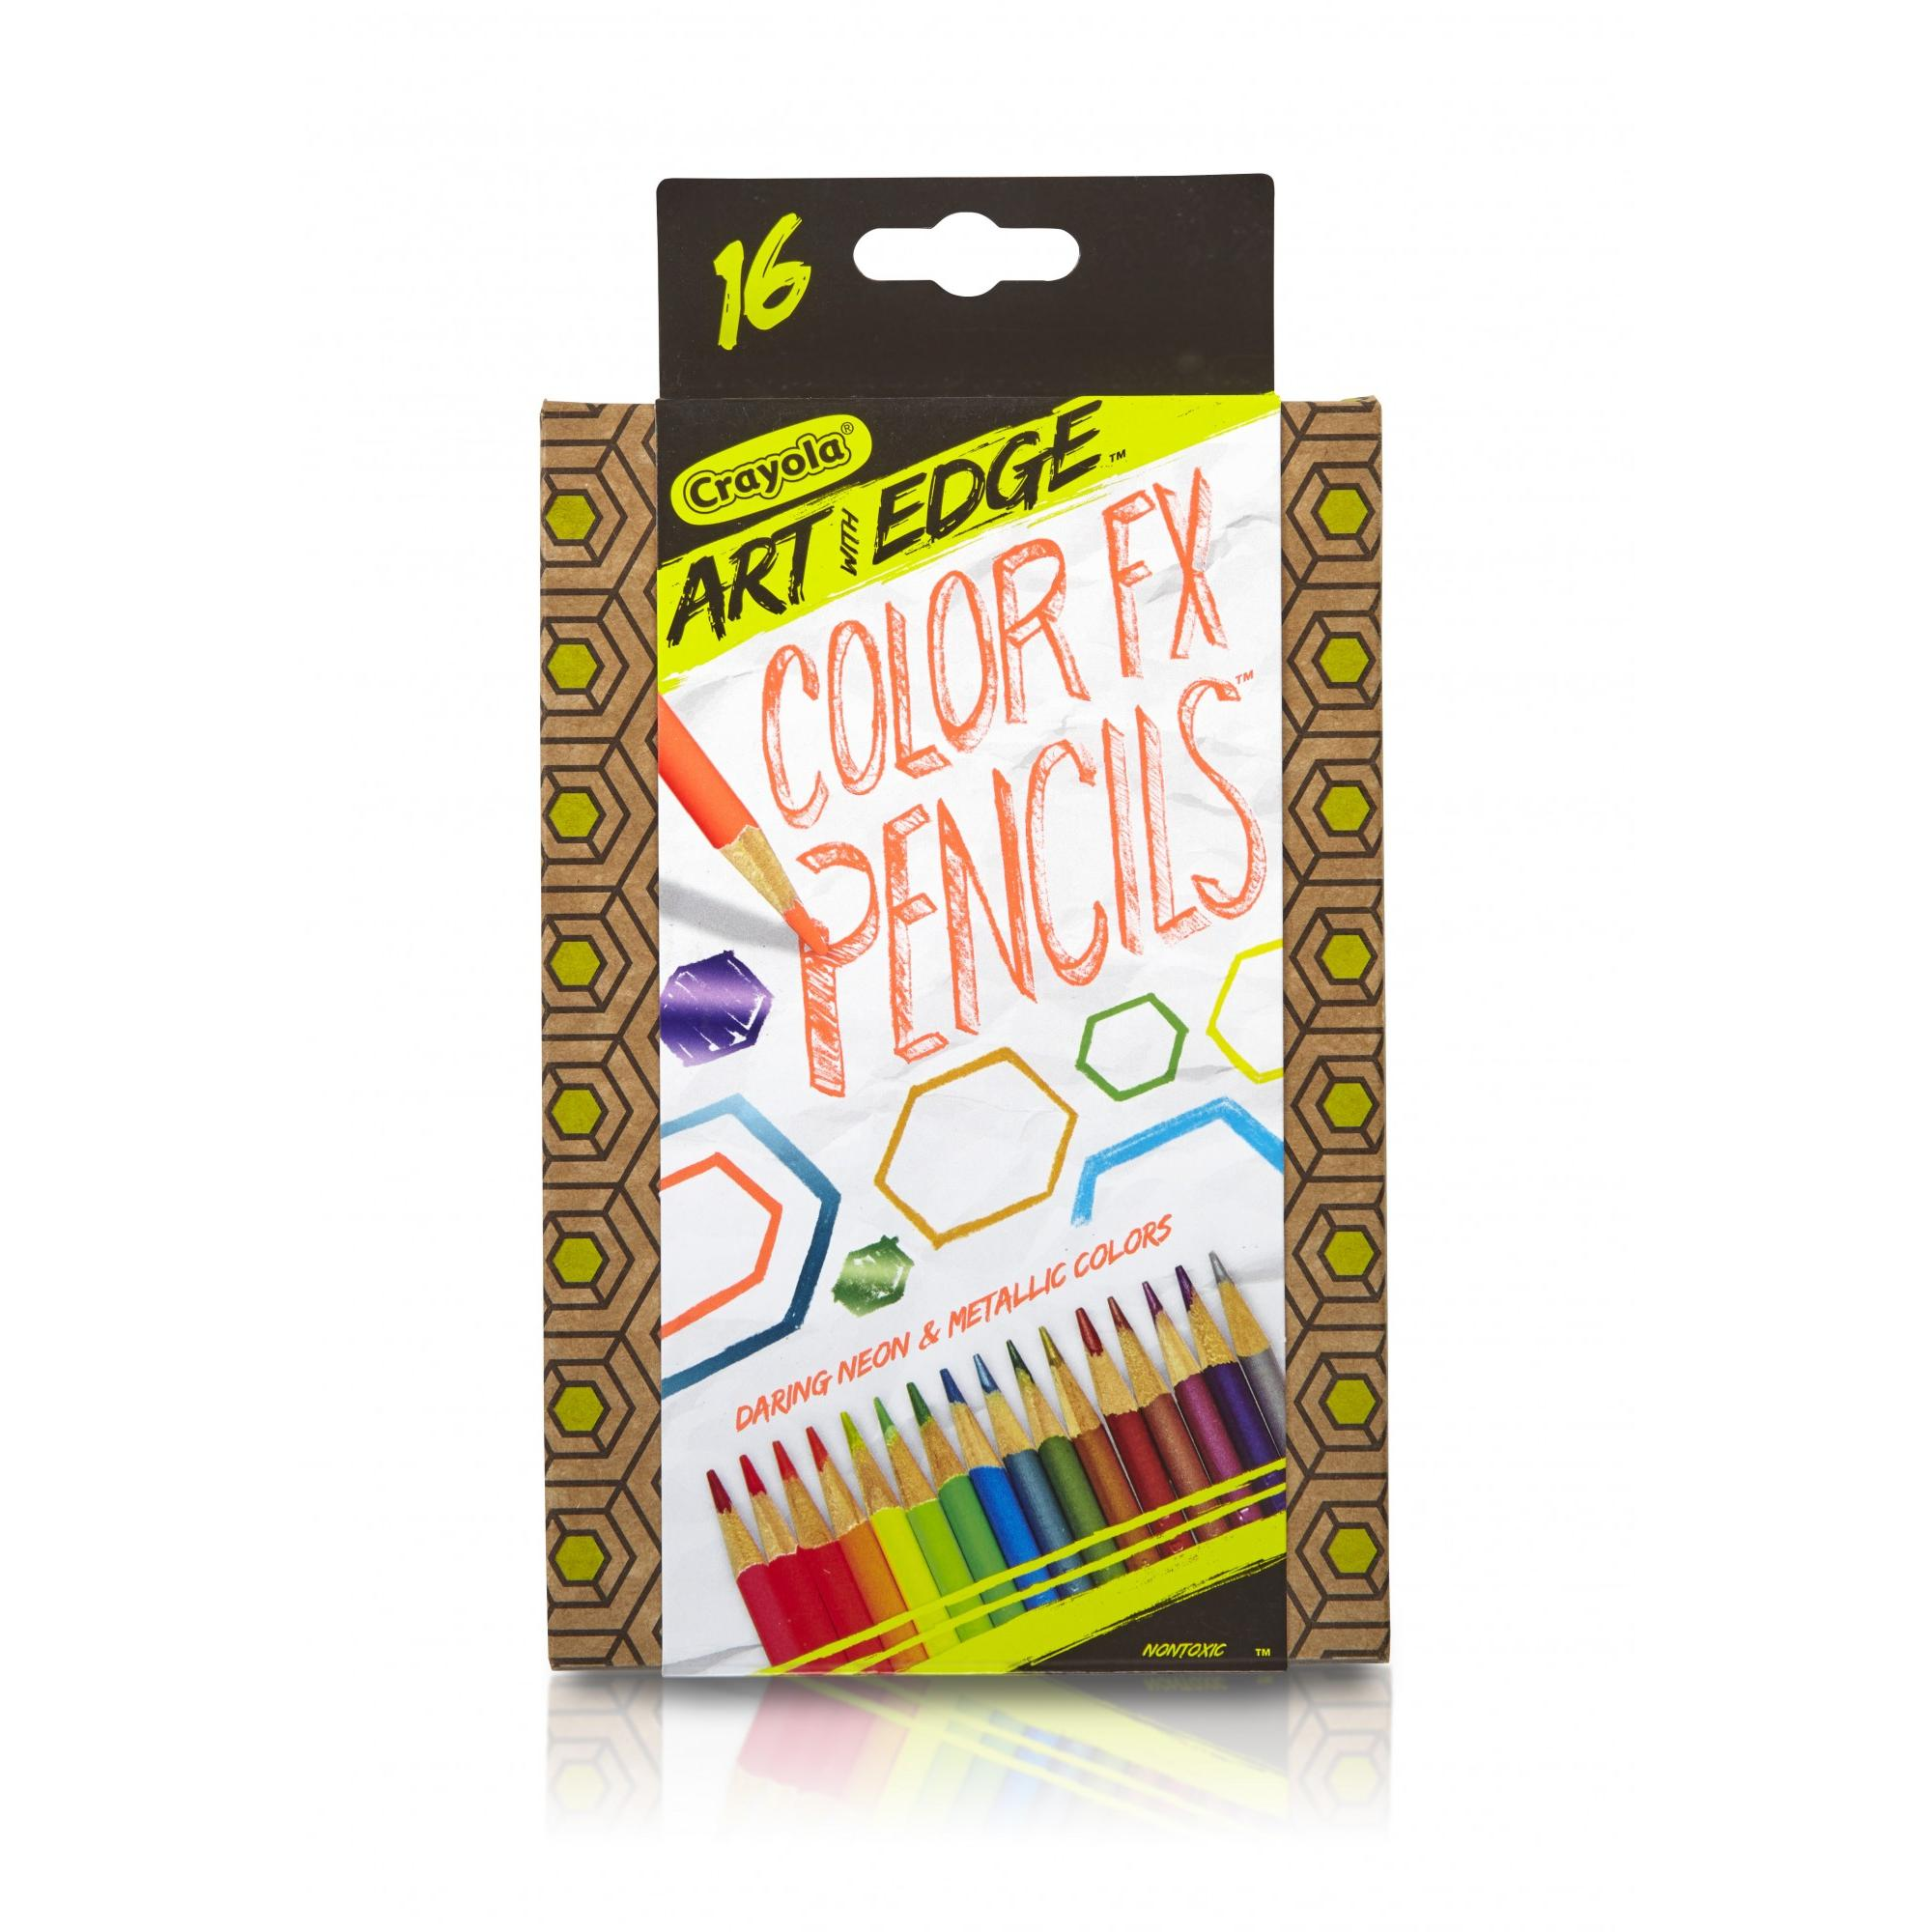 Crayola Art with Edge Neon & Metallic Colored Pencils, 16 Count by Crayola